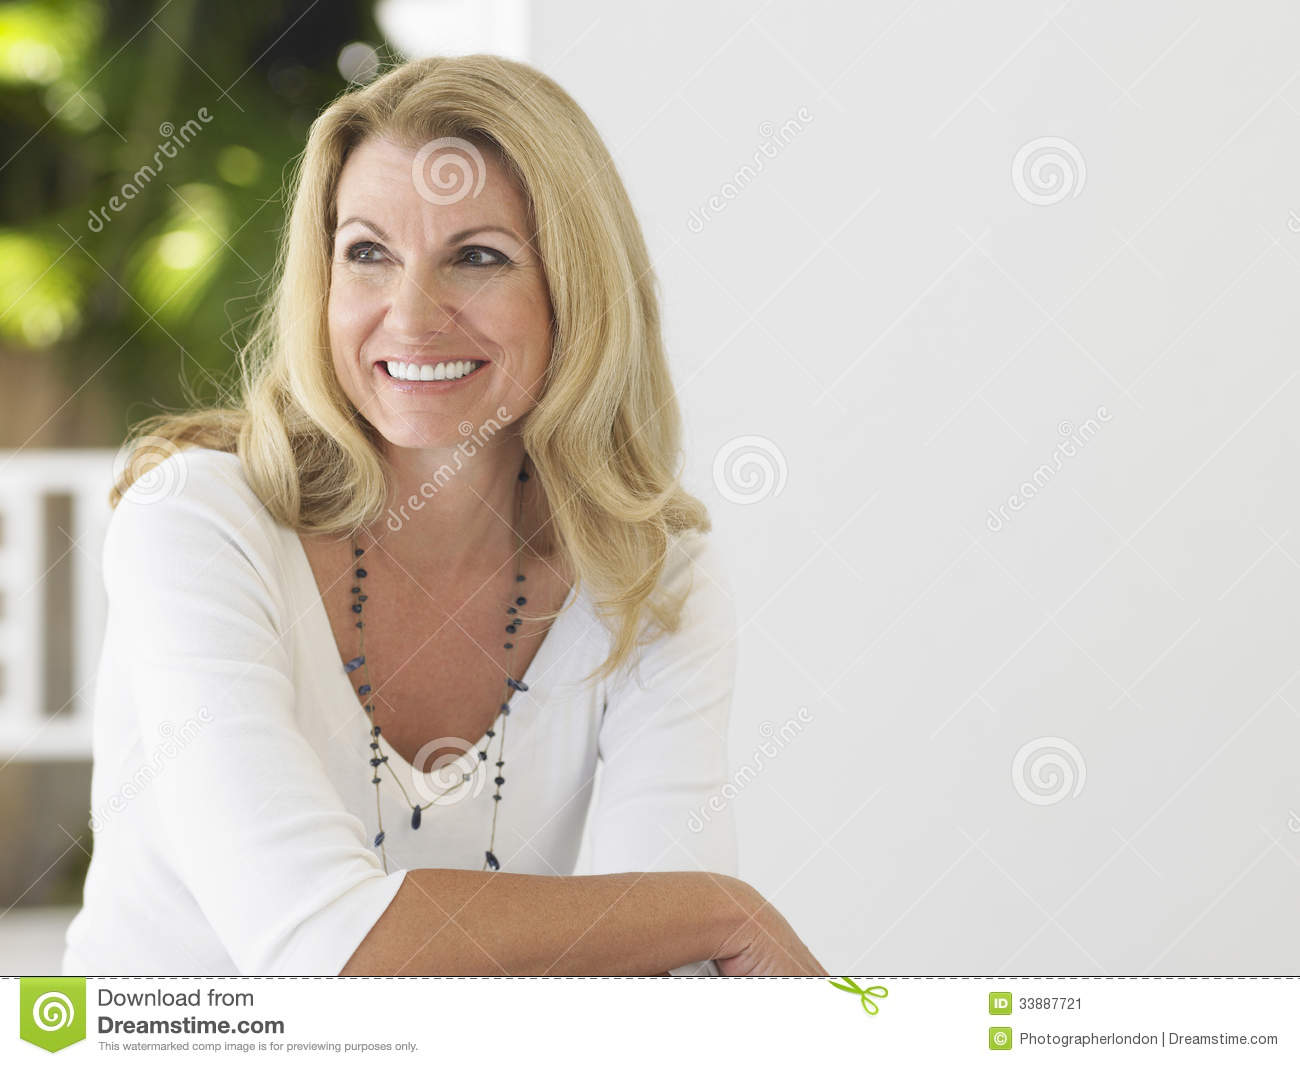 Guia Do Perder gordura thoughtful-happy-middle-aged-woman-looking-away-smiling-sitting-verandah-33887721